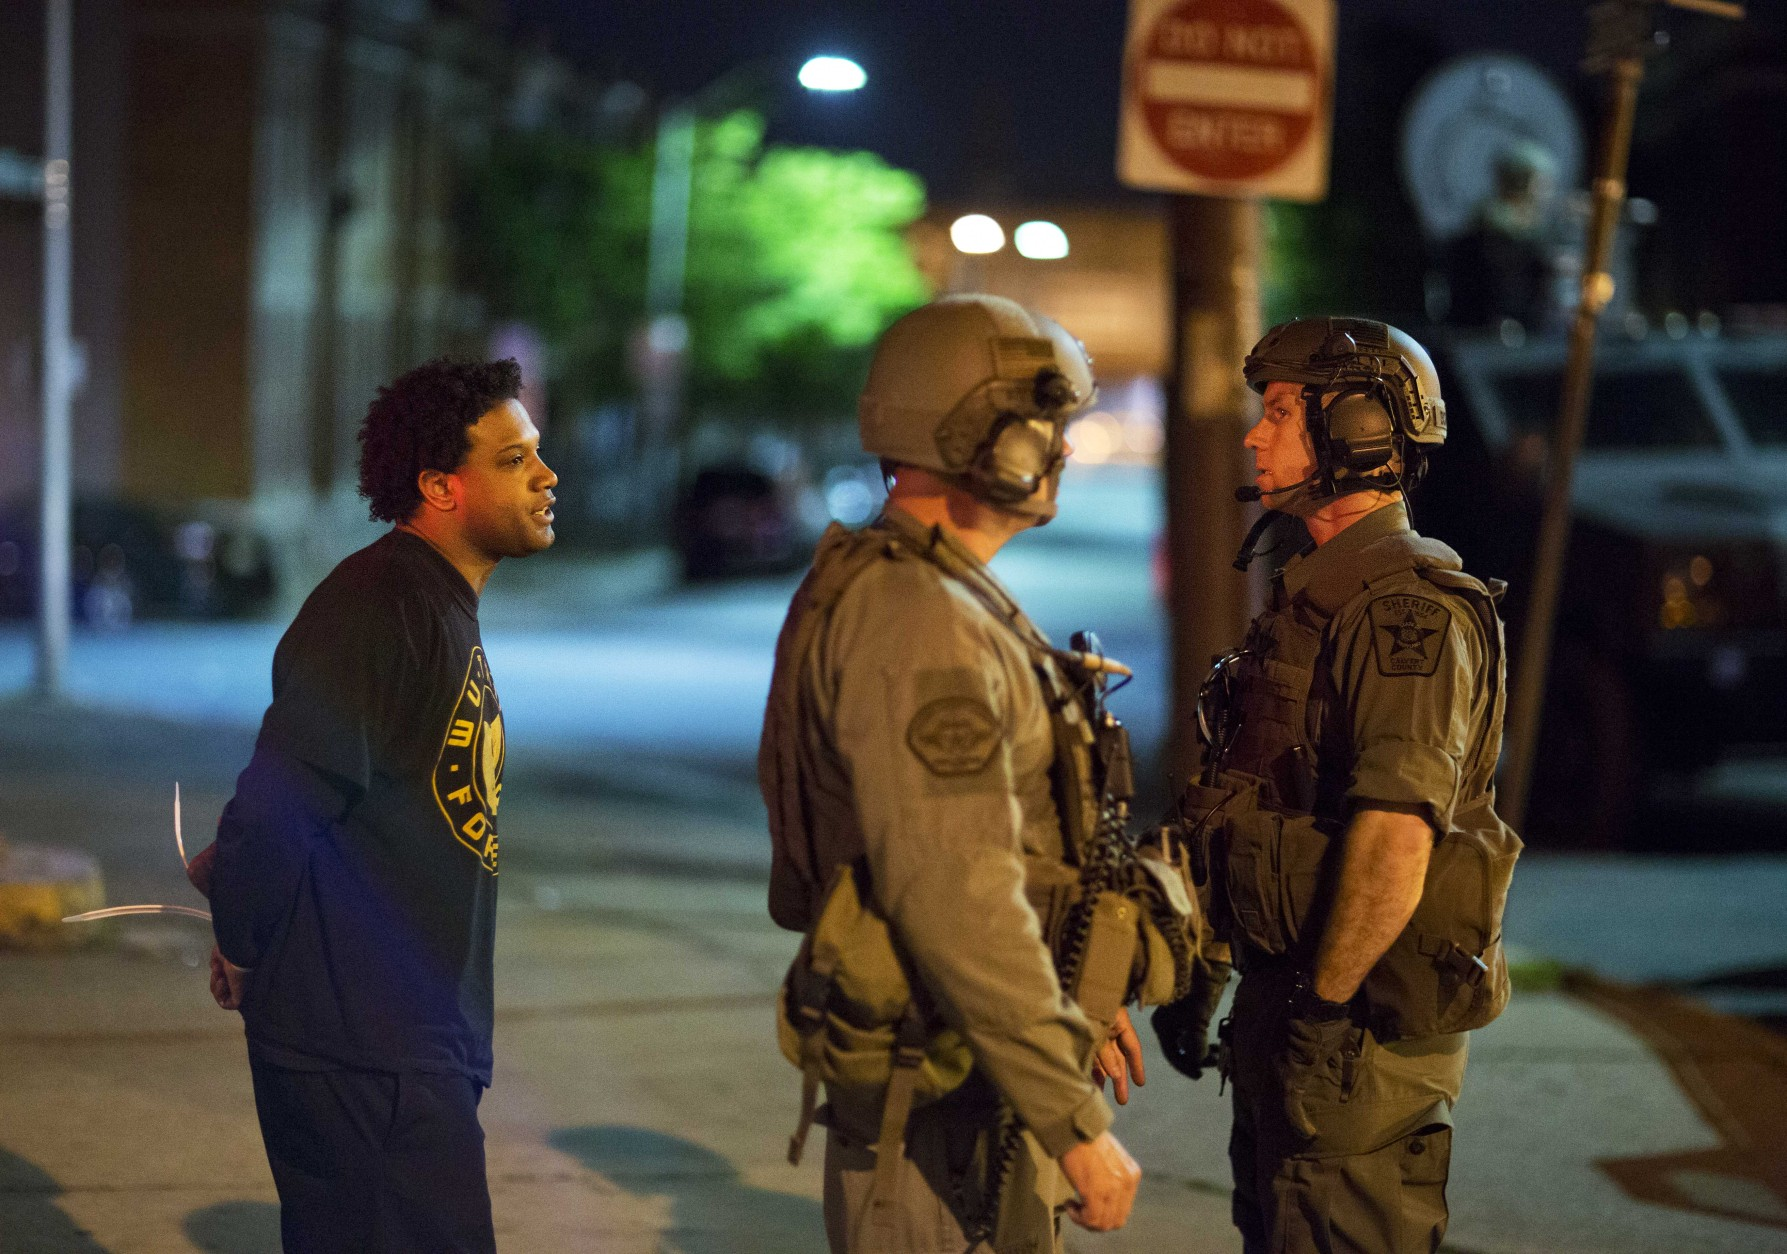 A man at left who would not give his name is arrested for violating the curfew where Monday's riots occurred following the funeral for Freddie Gray, Tuesday, April 28, 2015, in Baltimore. (AP Photo/David Goldman)